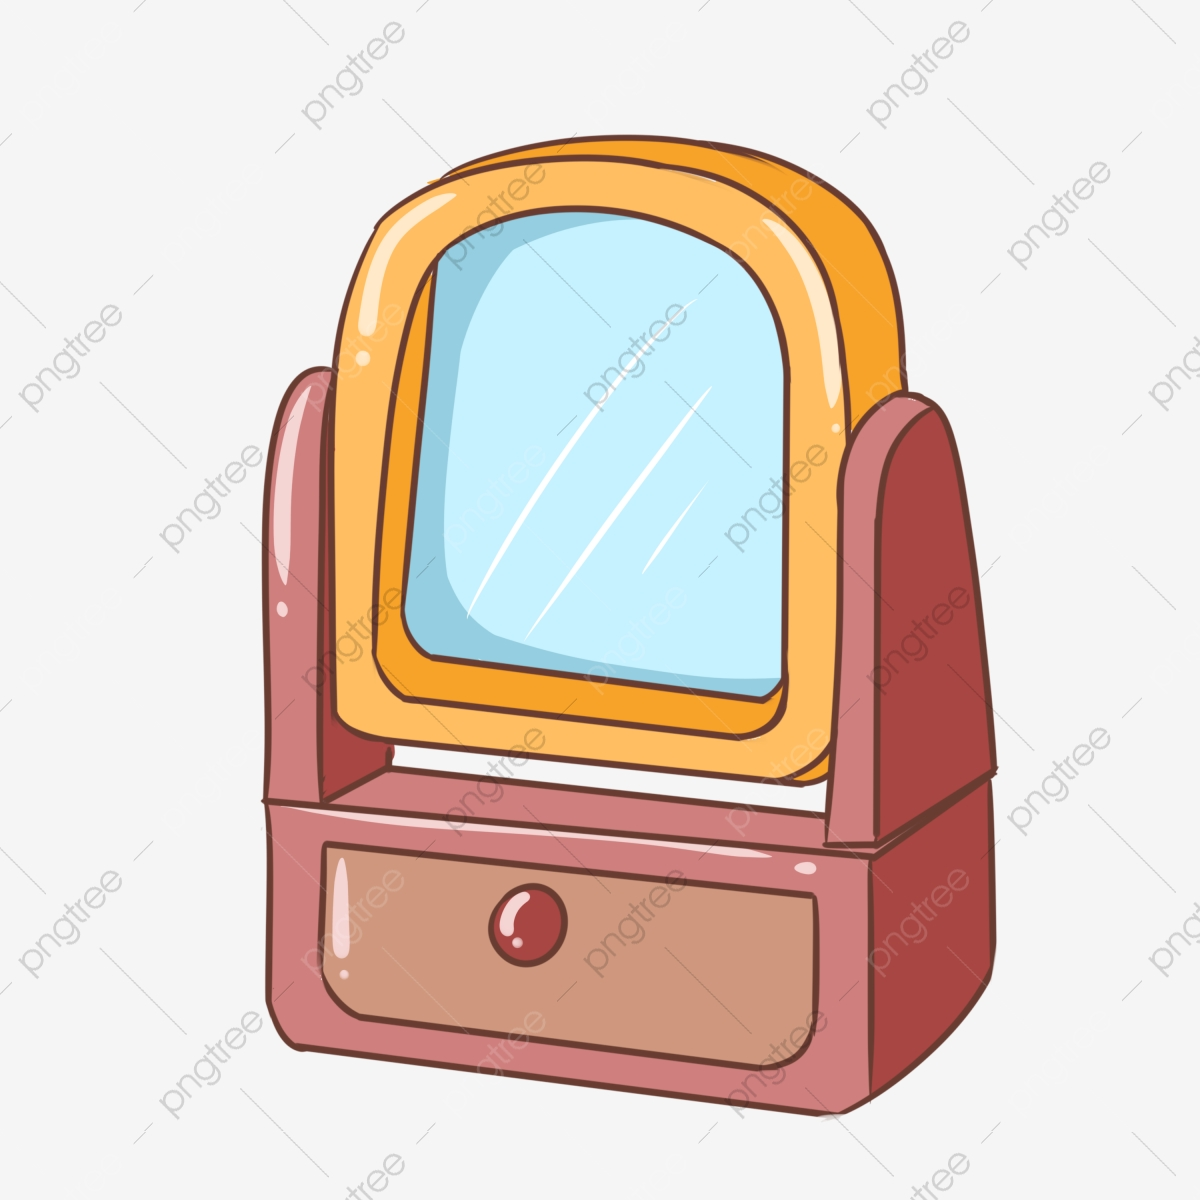 Mirror clipart cartoon. Dressing table drawer red